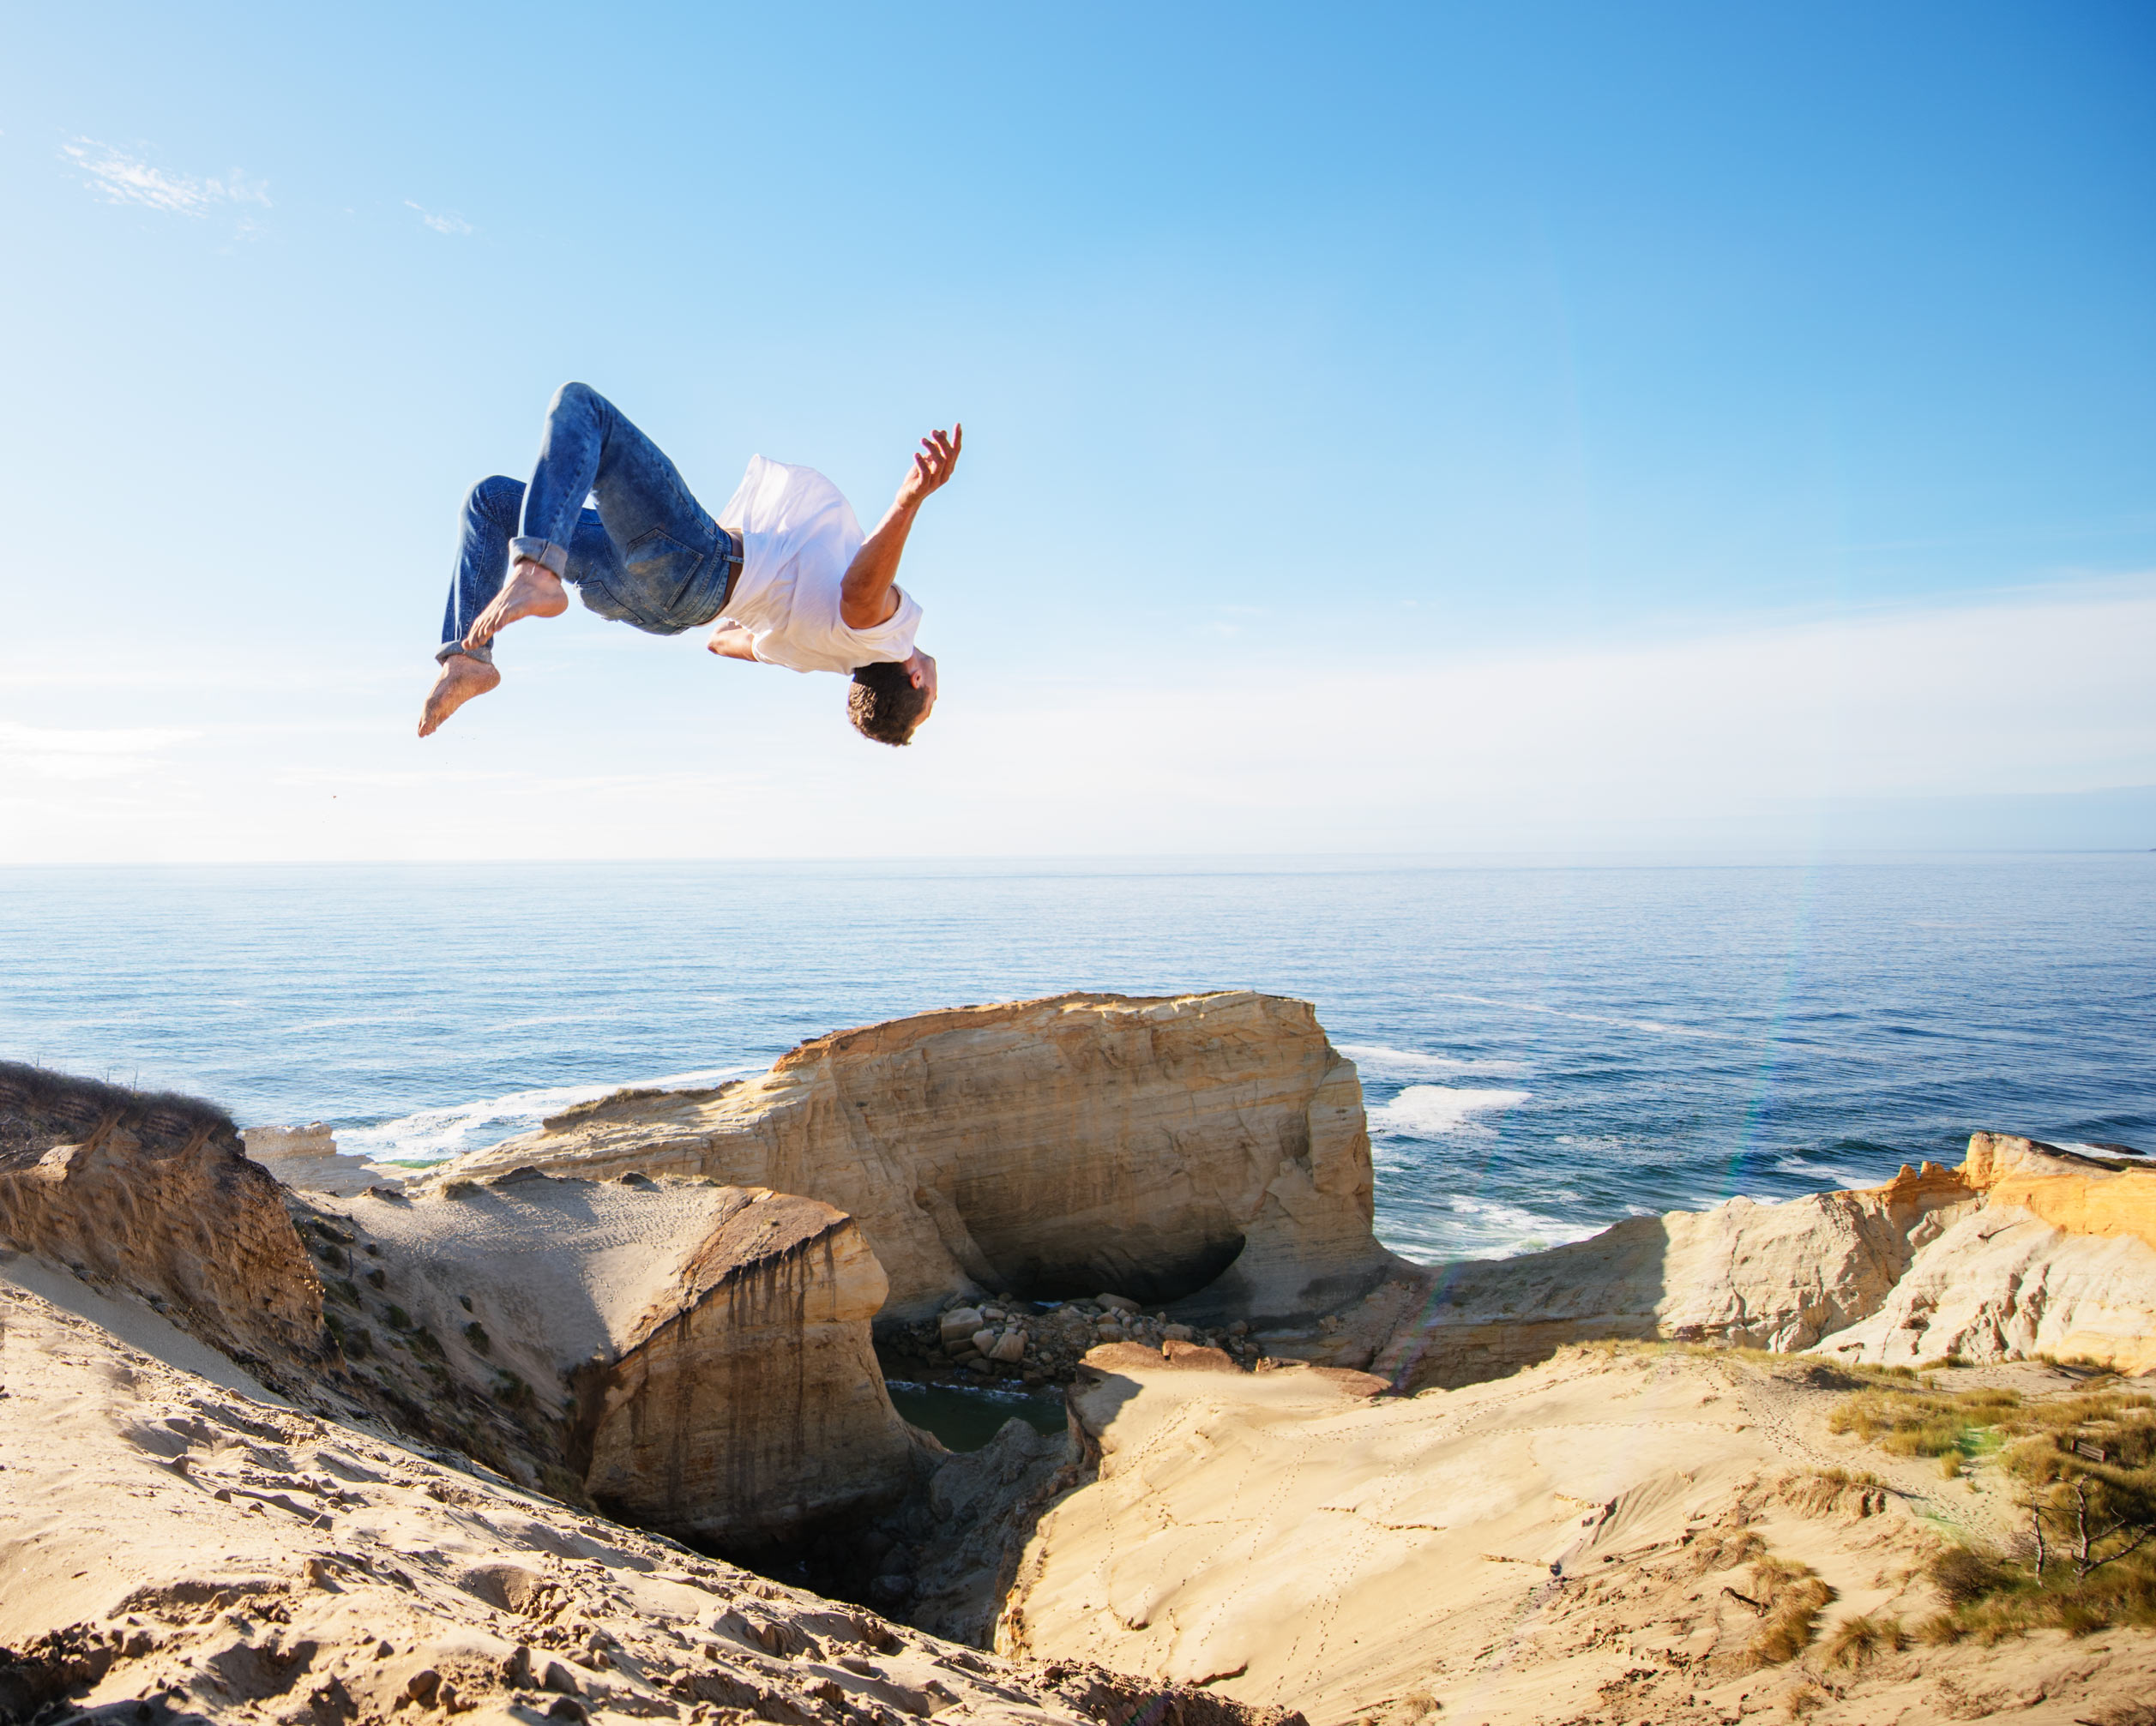 Man doing backflip at Cape Kiwanda on Oregon coast.